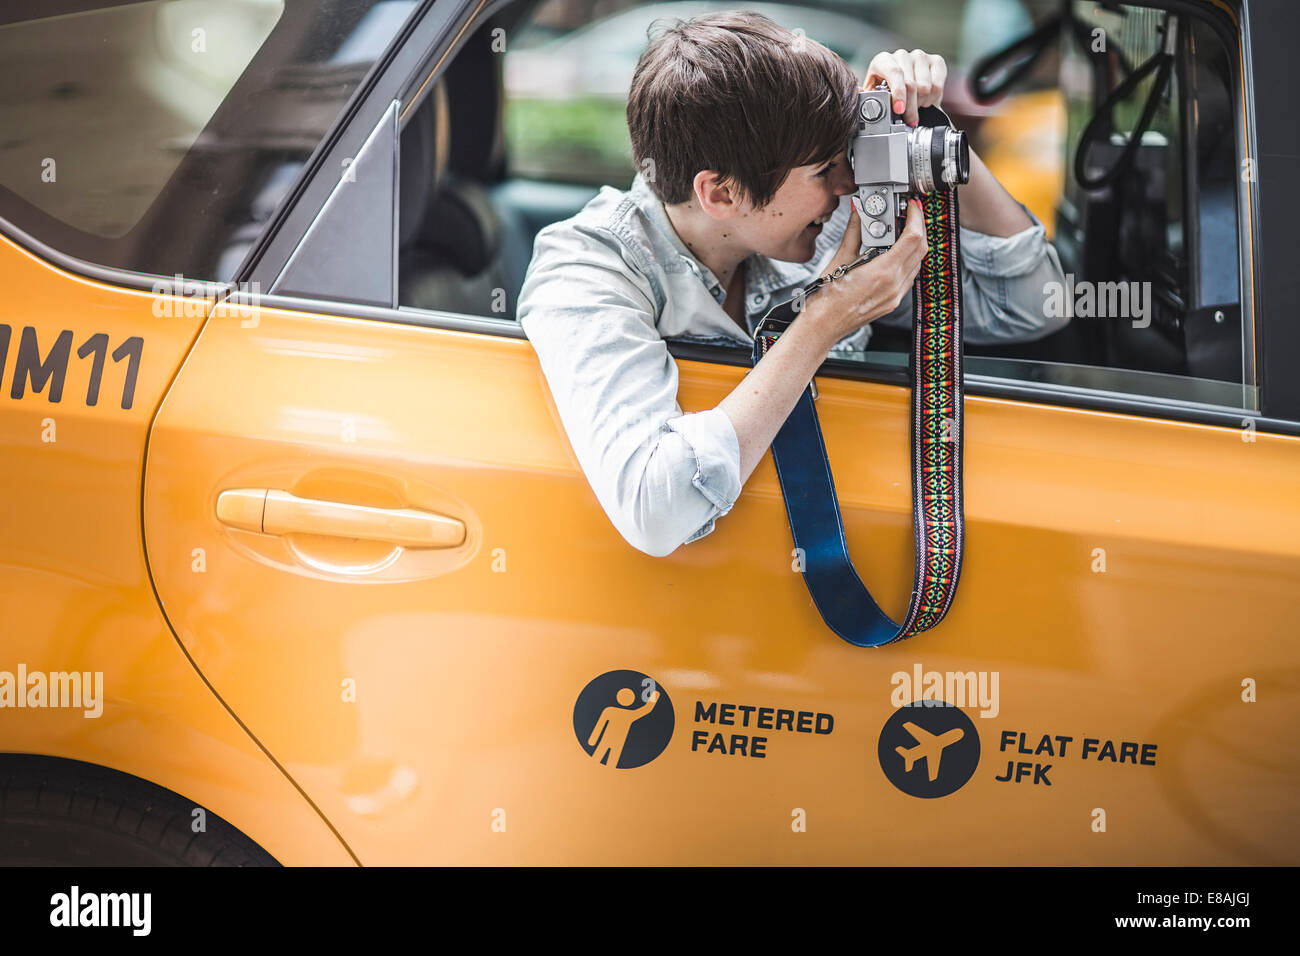 Photographier de femme taxi jaune, New York, États-Unis Photo Stock